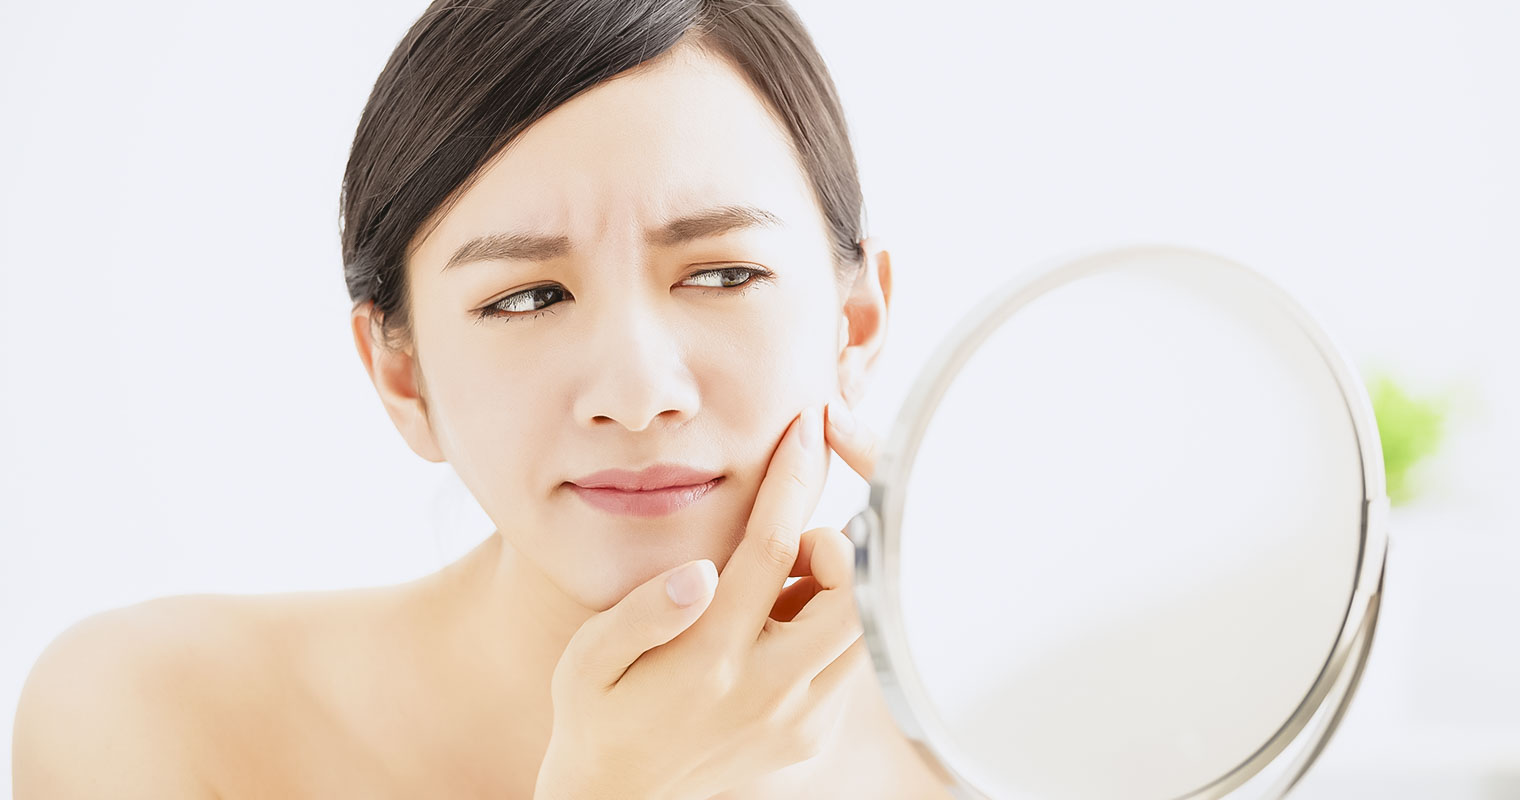 Woman looking into a mirror pricking her pimple